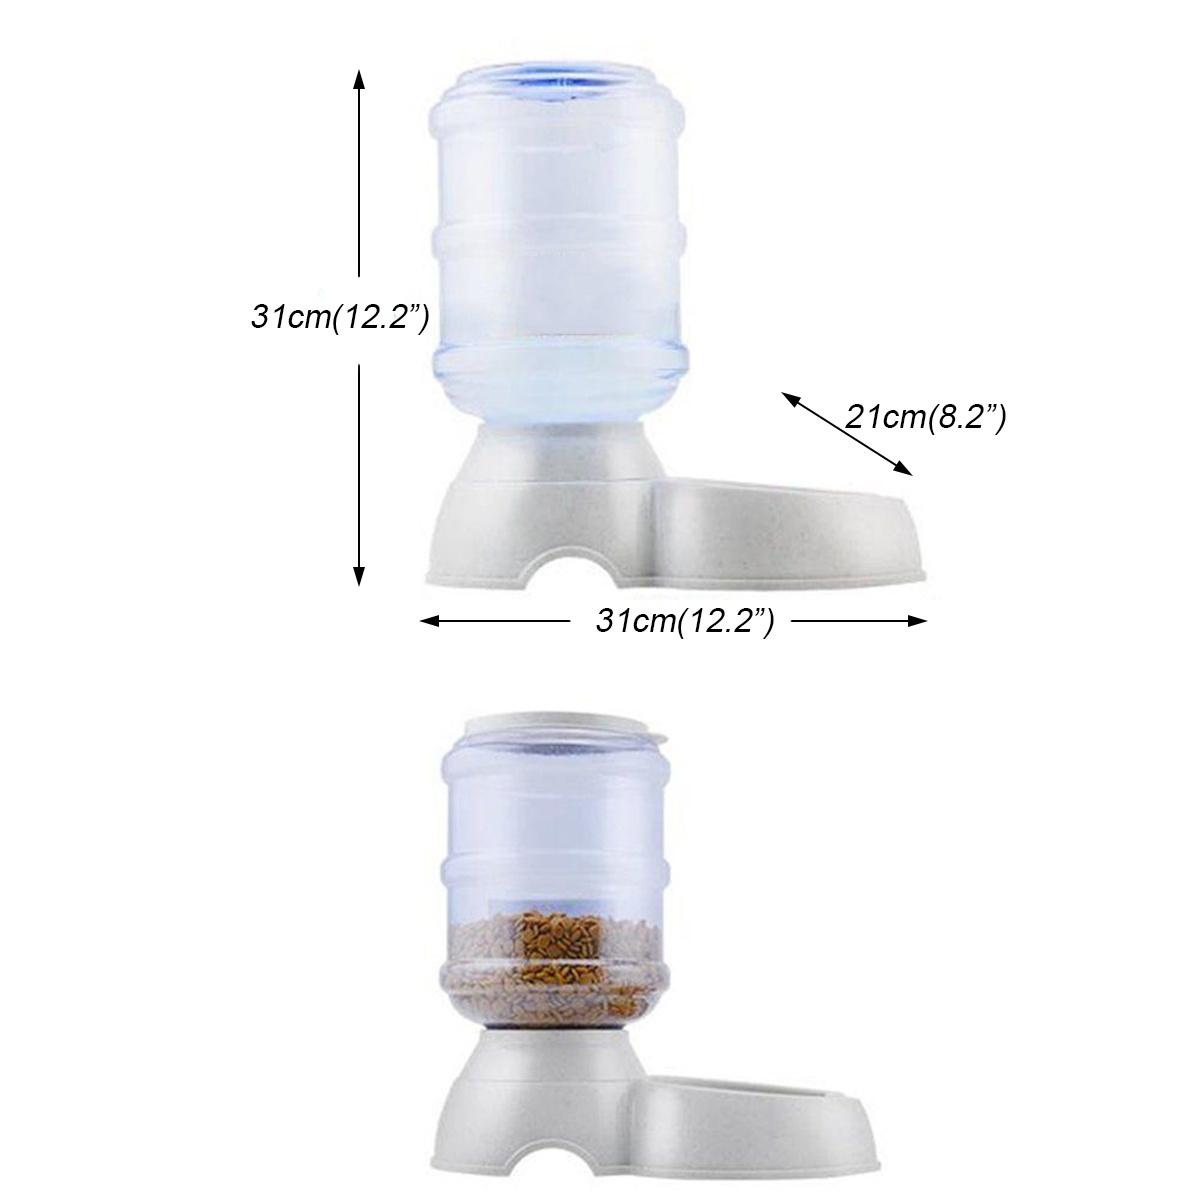 3.8L Automatic Detachable Pet Feeder Food Bowl Water Dispenser Feeding Machine Leakproof